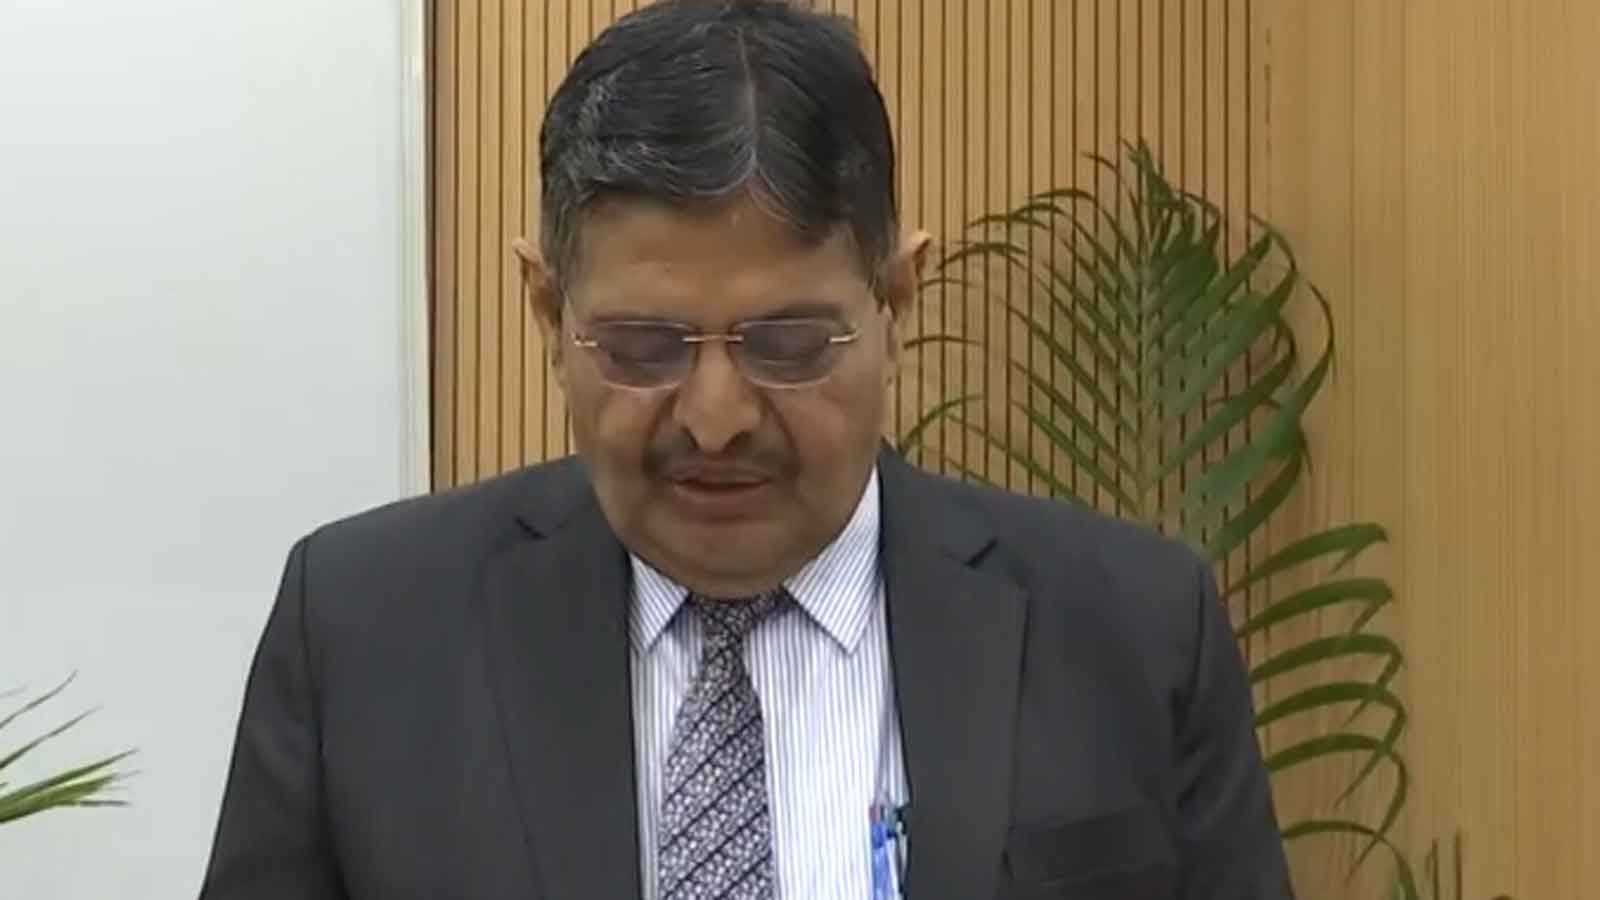 pradeep-kumar-joshi-takes-oath-as-upsc-chairman